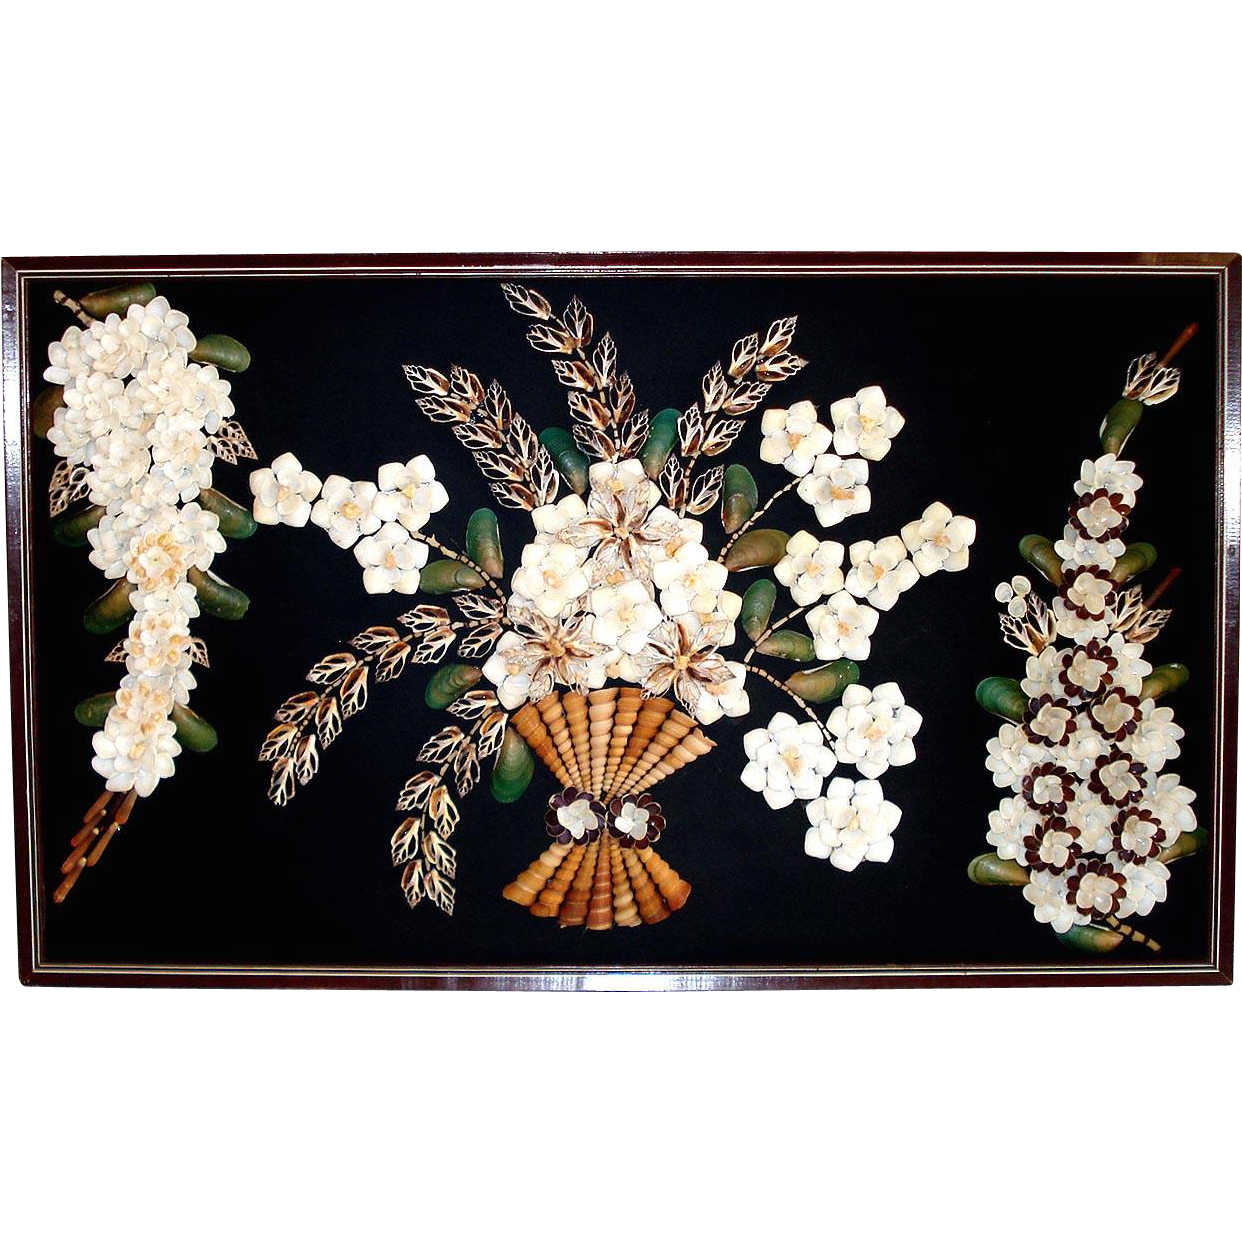 Large Framed Seashell Art Flower Wall Picture 32 x 19